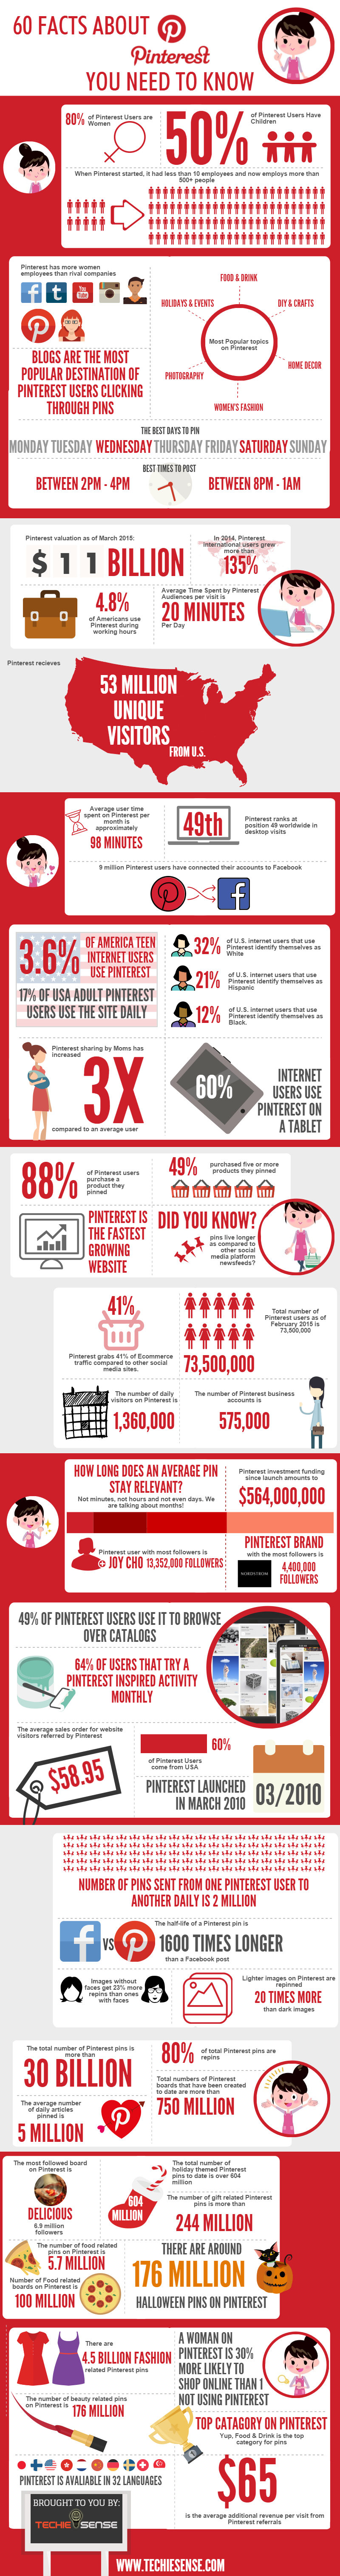 Everything You Wanted to Know About Pinterest – Infographic